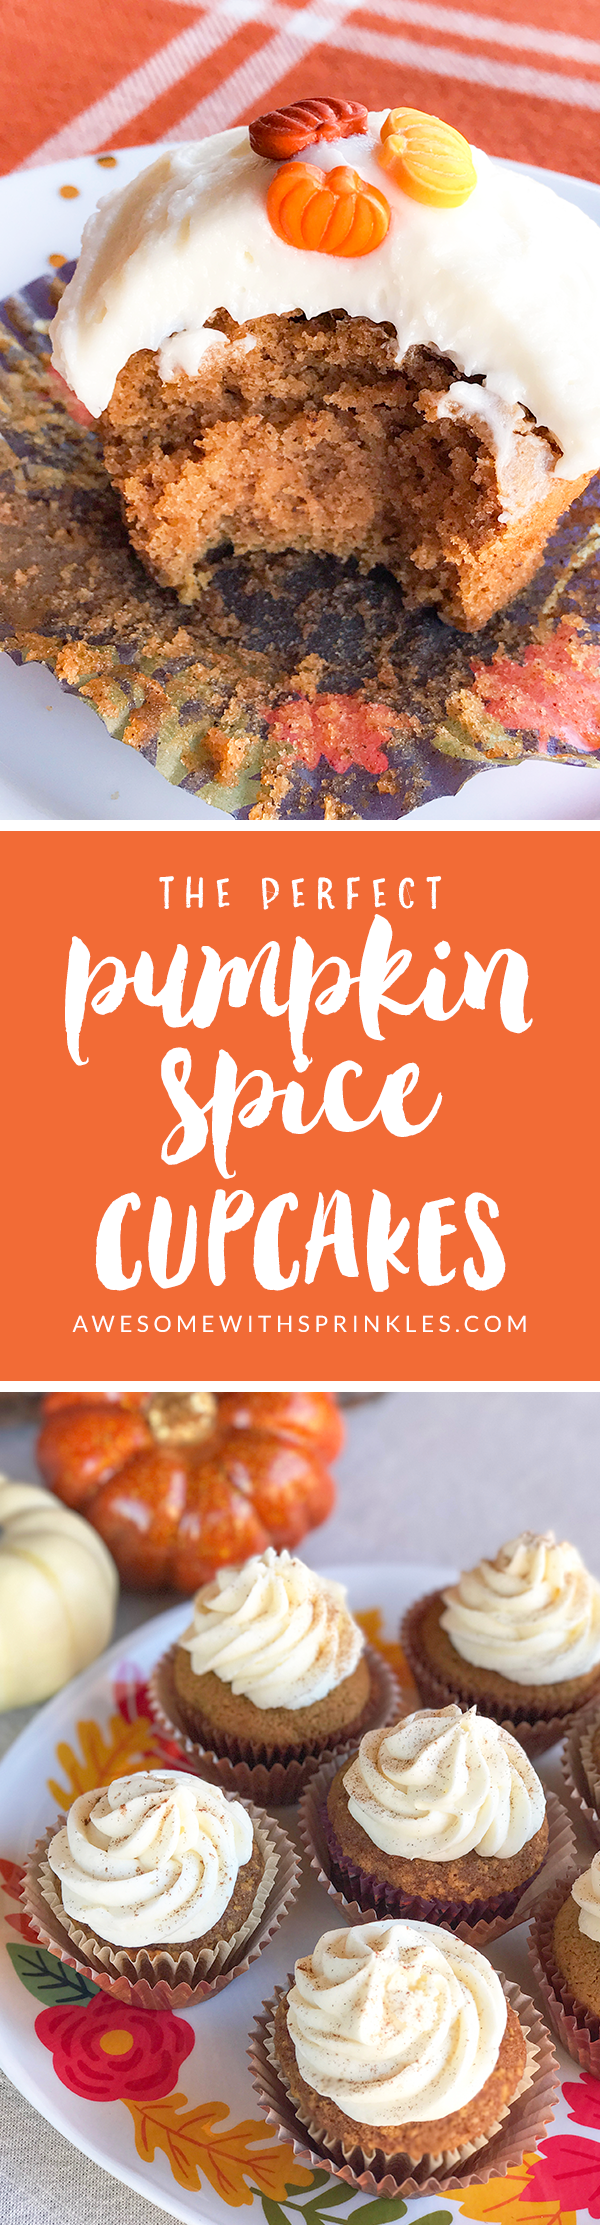 The Perfect Pumpkin Spice Cupcakes with Cinnamon Cream Cheese Frosting | Awesome with Sprinkles